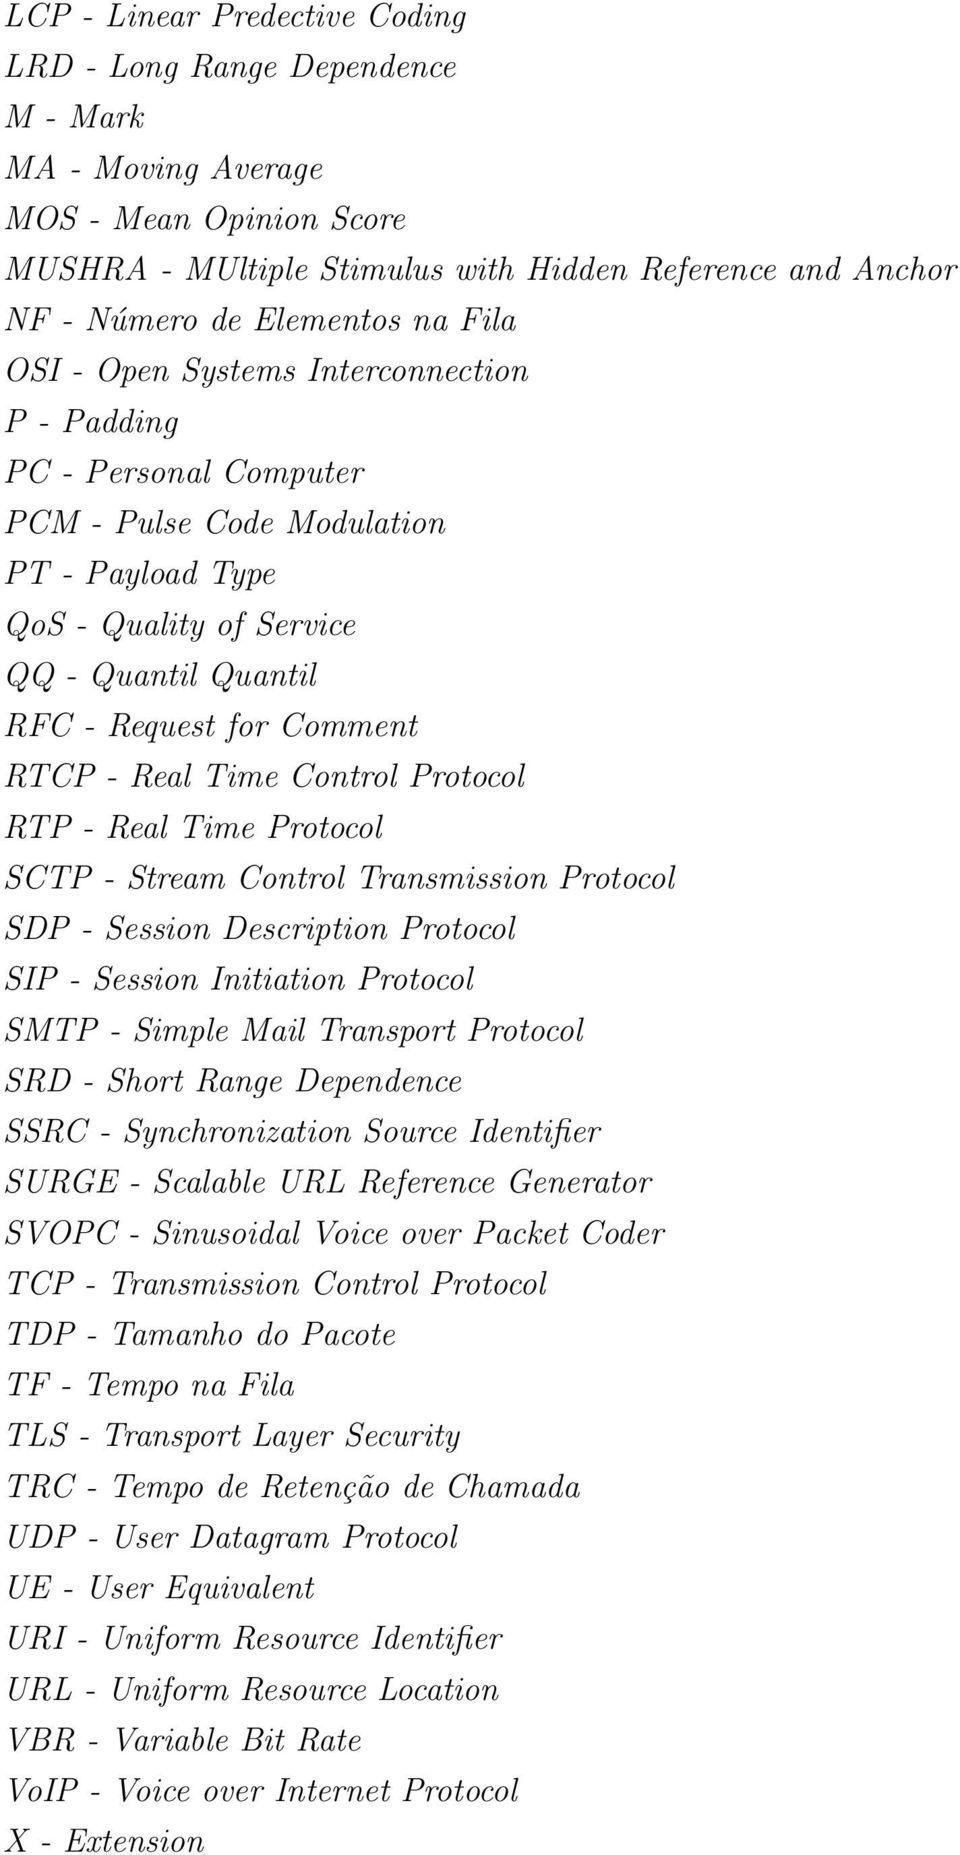 RTCP - Real Time Control Protocol RTP - Real Time Protocol SCTP - Stream Control Transmission Protocol SDP - Session Description Protocol SIP - Session Initiation Protocol SMTP - Simple Mail